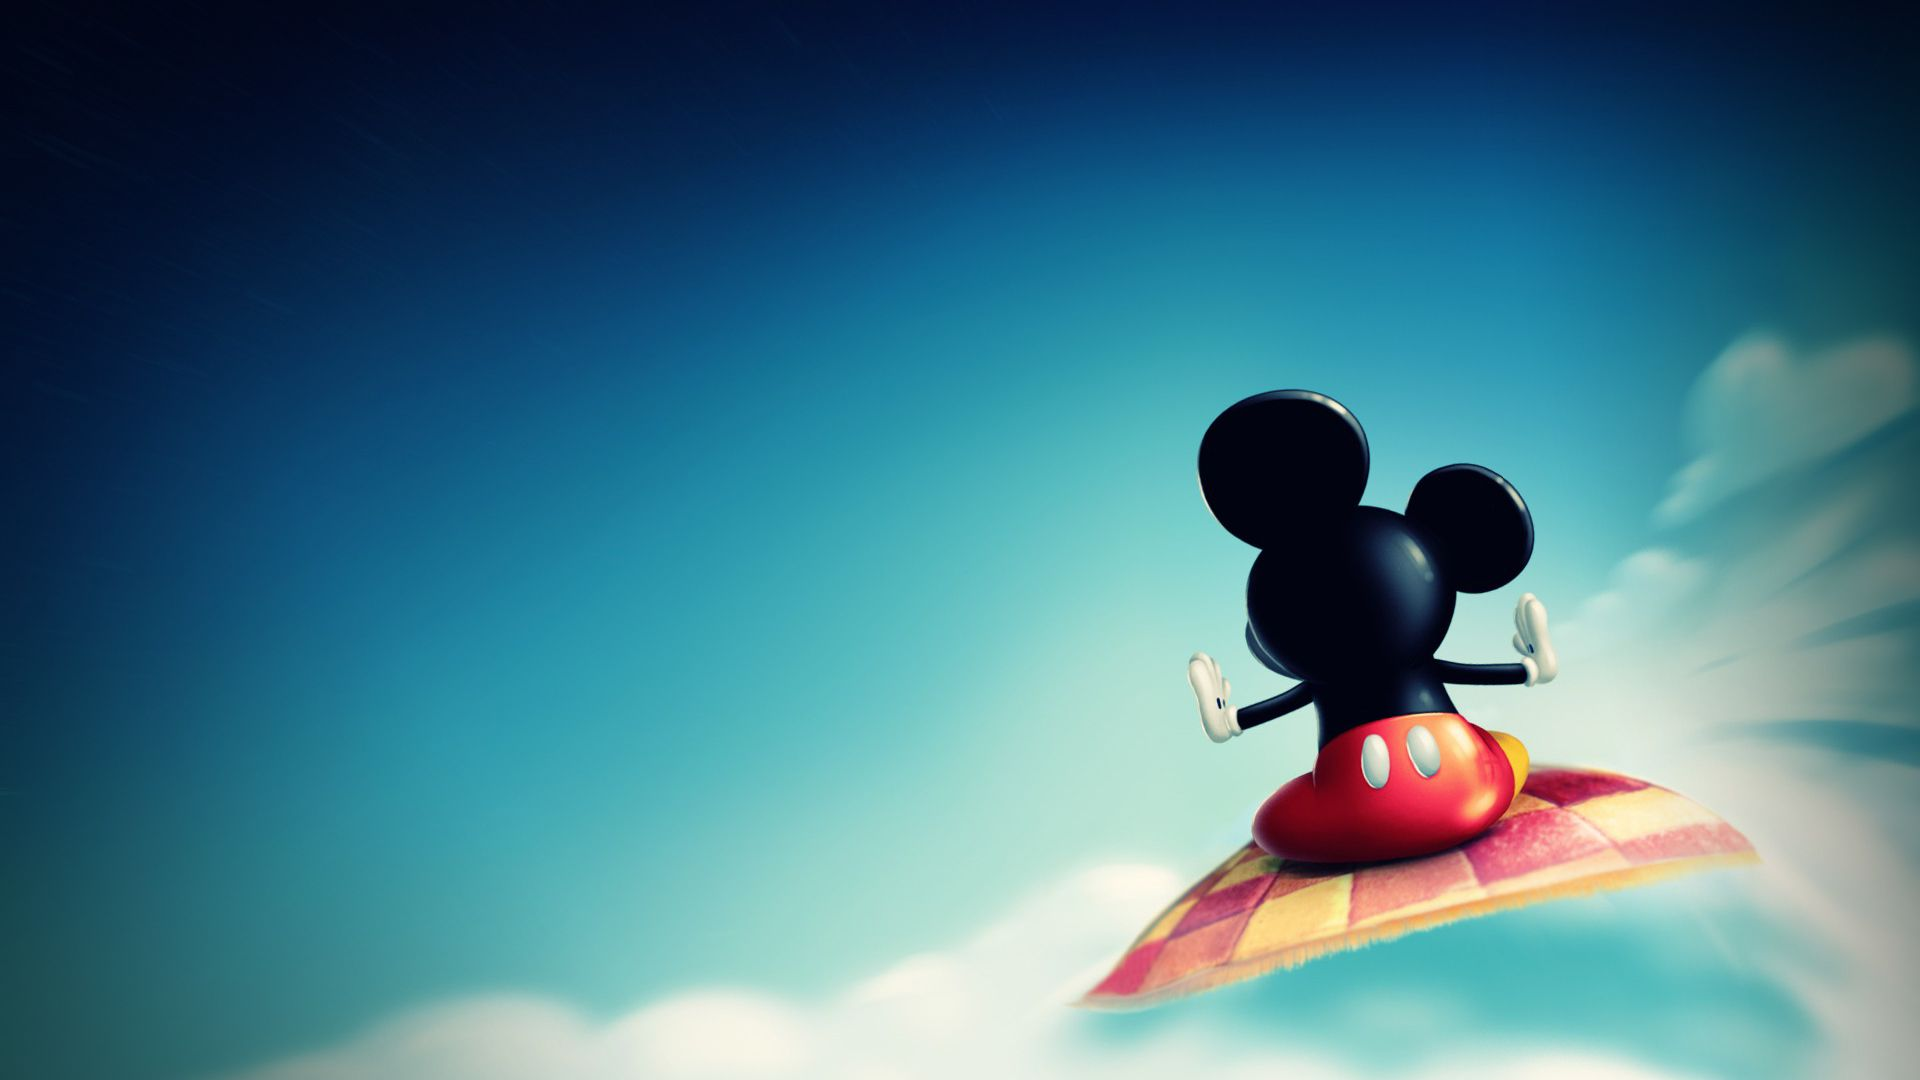 Mickey mouse hd wallpapers hd wallpaper disney in 2019 - Mickey mouse hd wallpaper 1366x768 ...